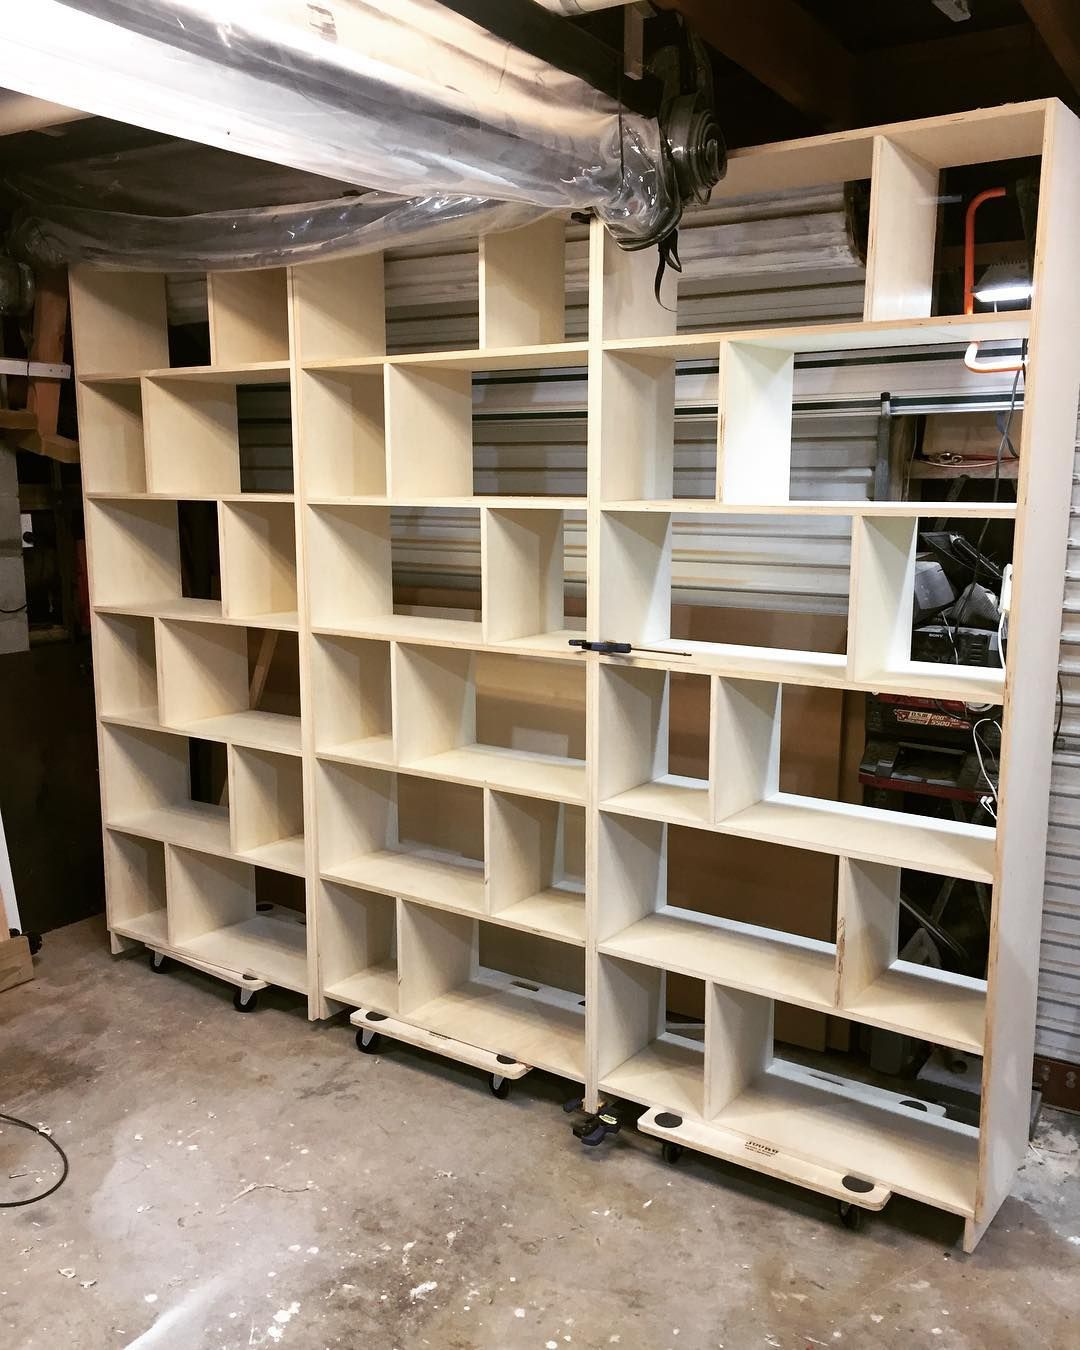 32 Likes 3 Comments Clash Furniture Makers Clashfurniture On Instagram Vinyl Shelves I Need A Bigger Workshop Clashfurniture Outgrown Movingquickly